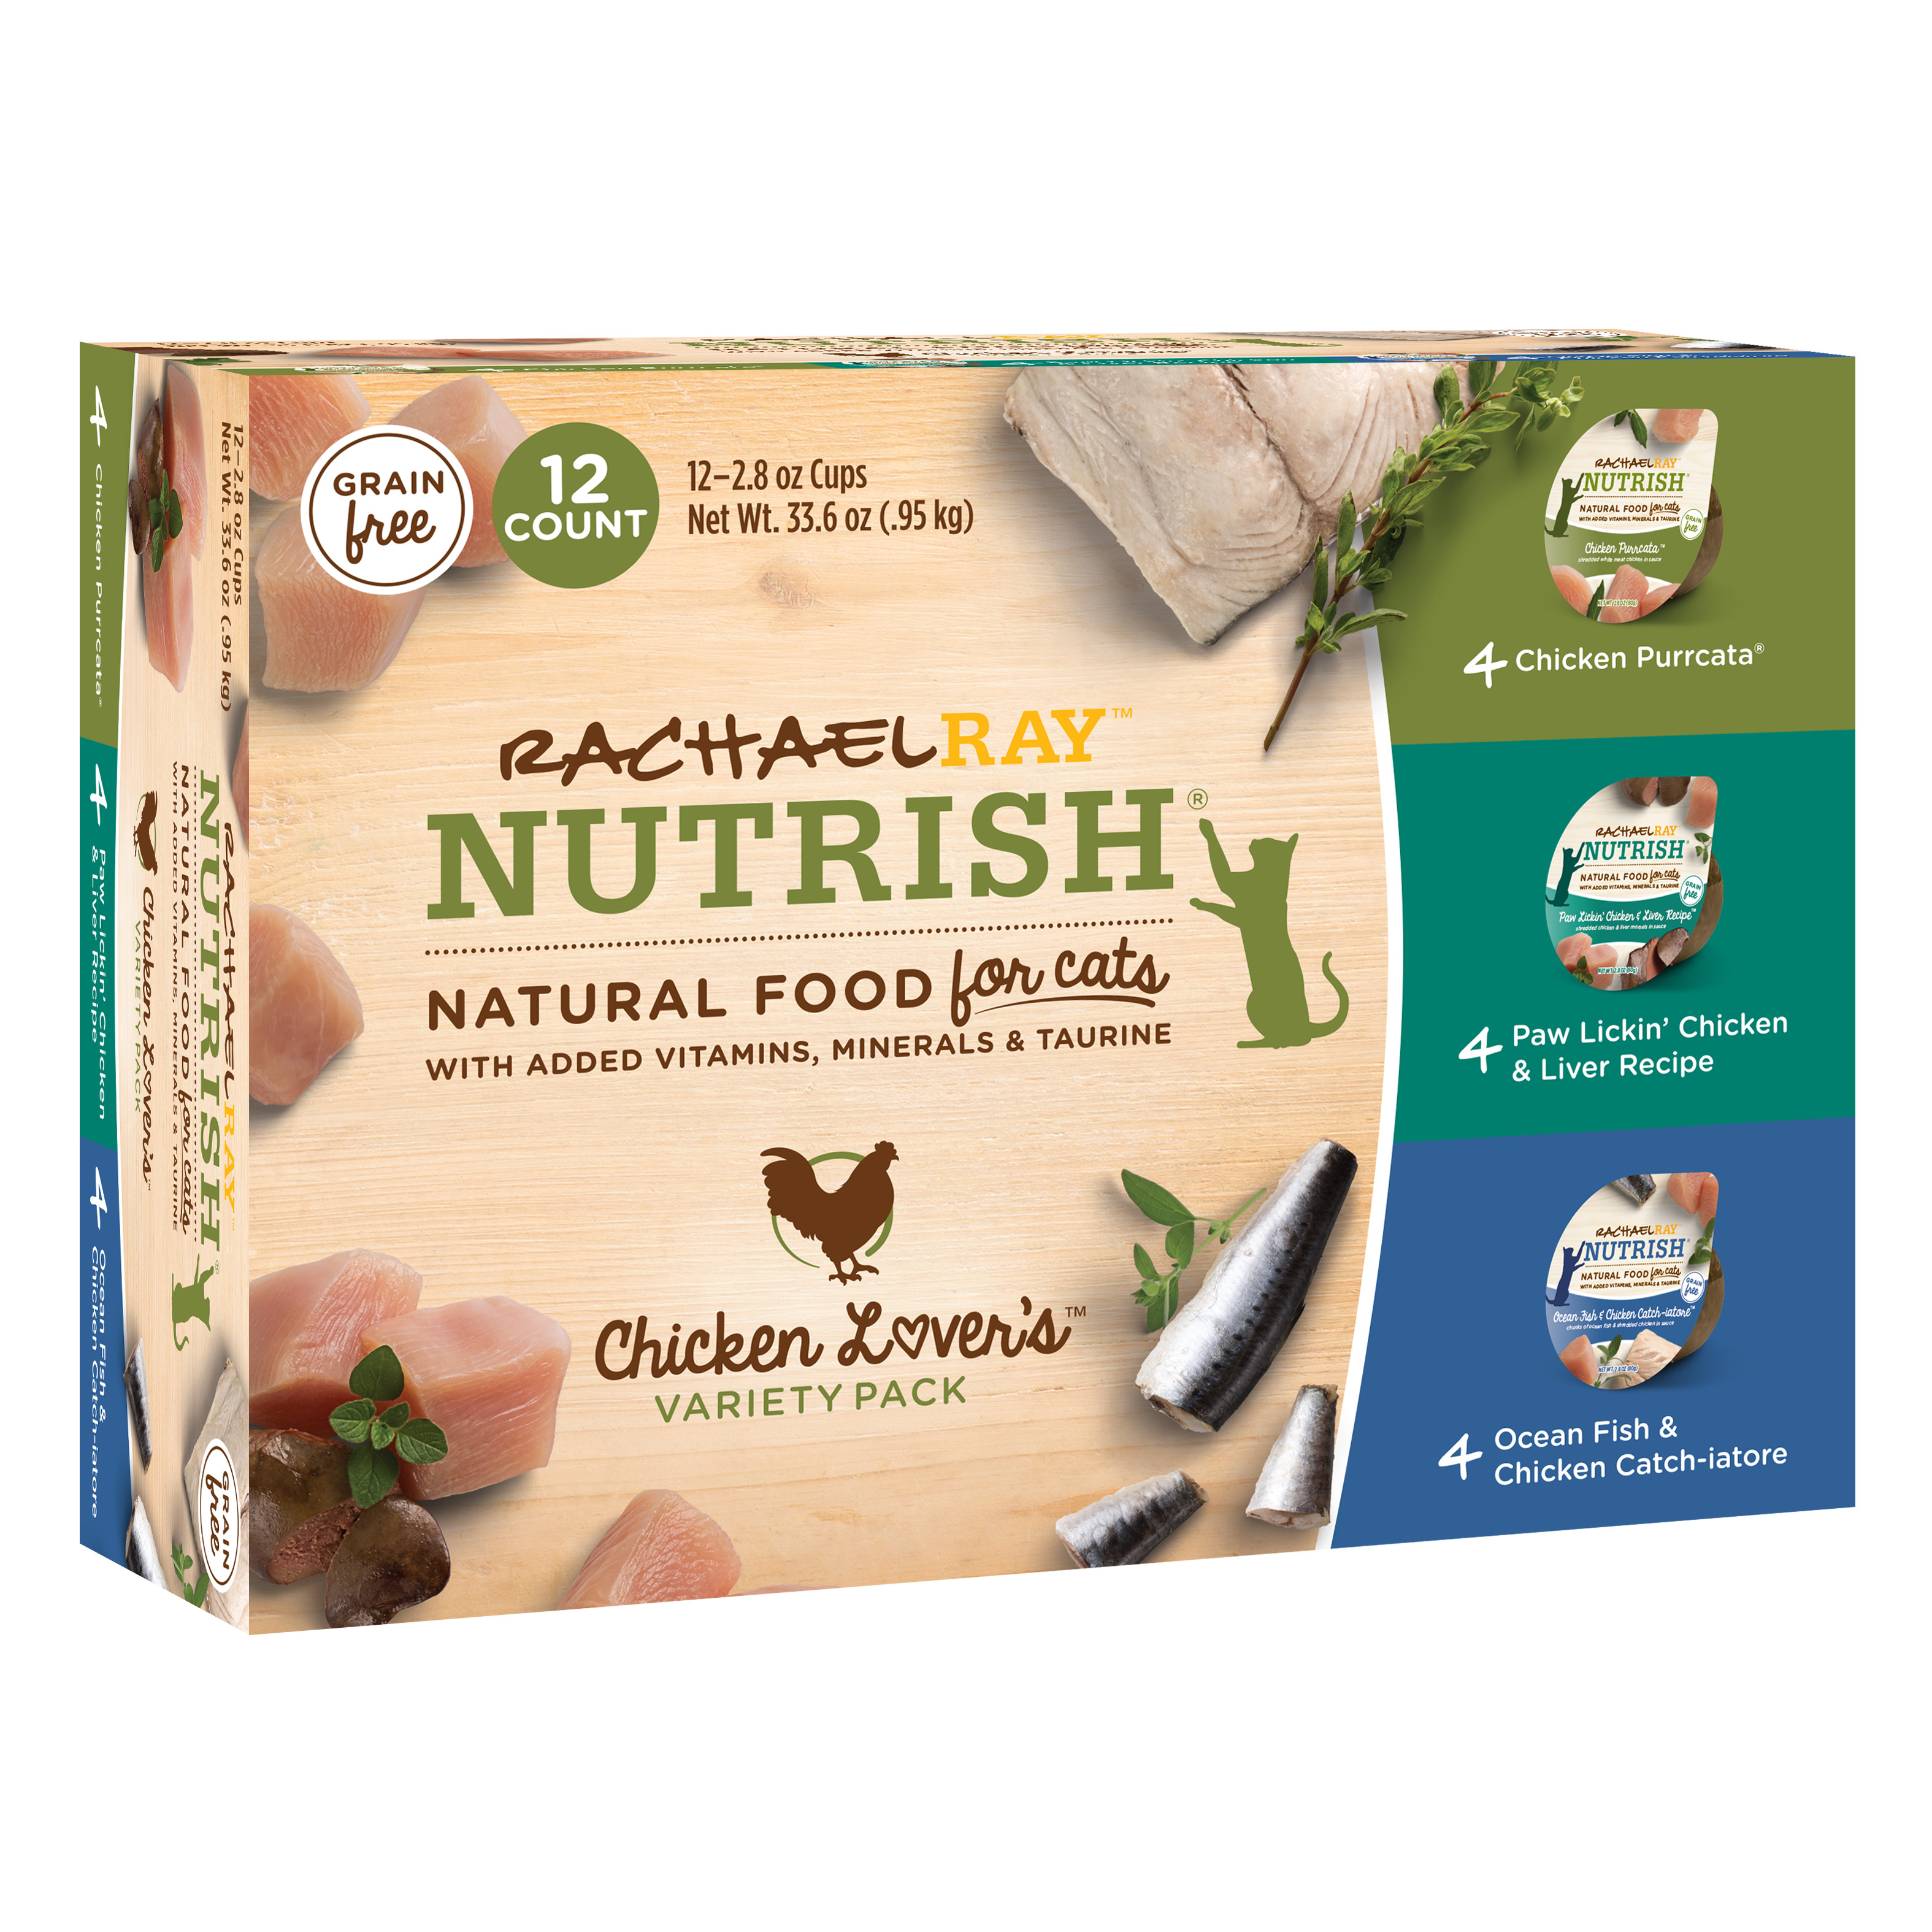 Rachael Ray Nutrish Natural Wet Cat Food Variety Pack - Chicken Lovers, 2.8 oz tubs, Pack of 12